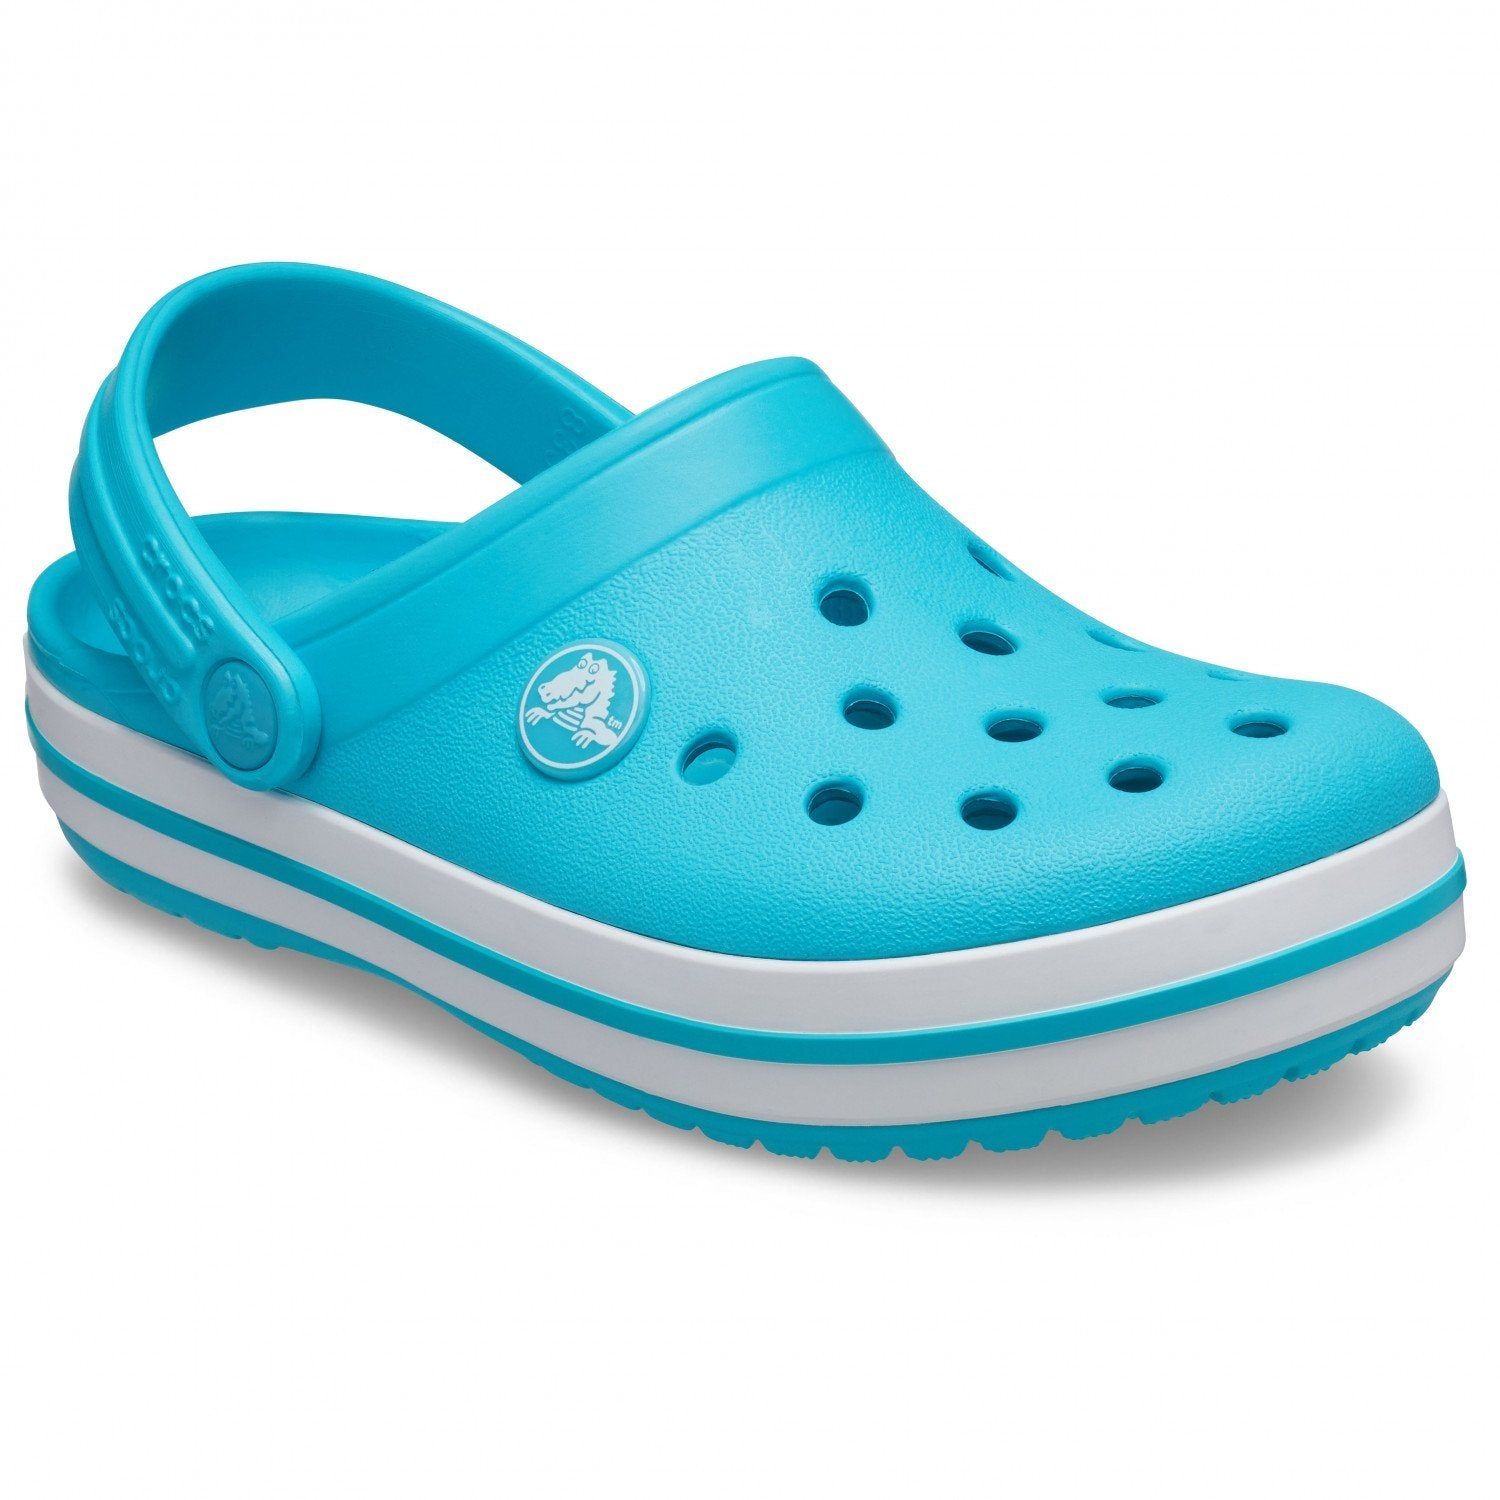 Crocs Crocband Digital Aqua Incaltaminte Crocs